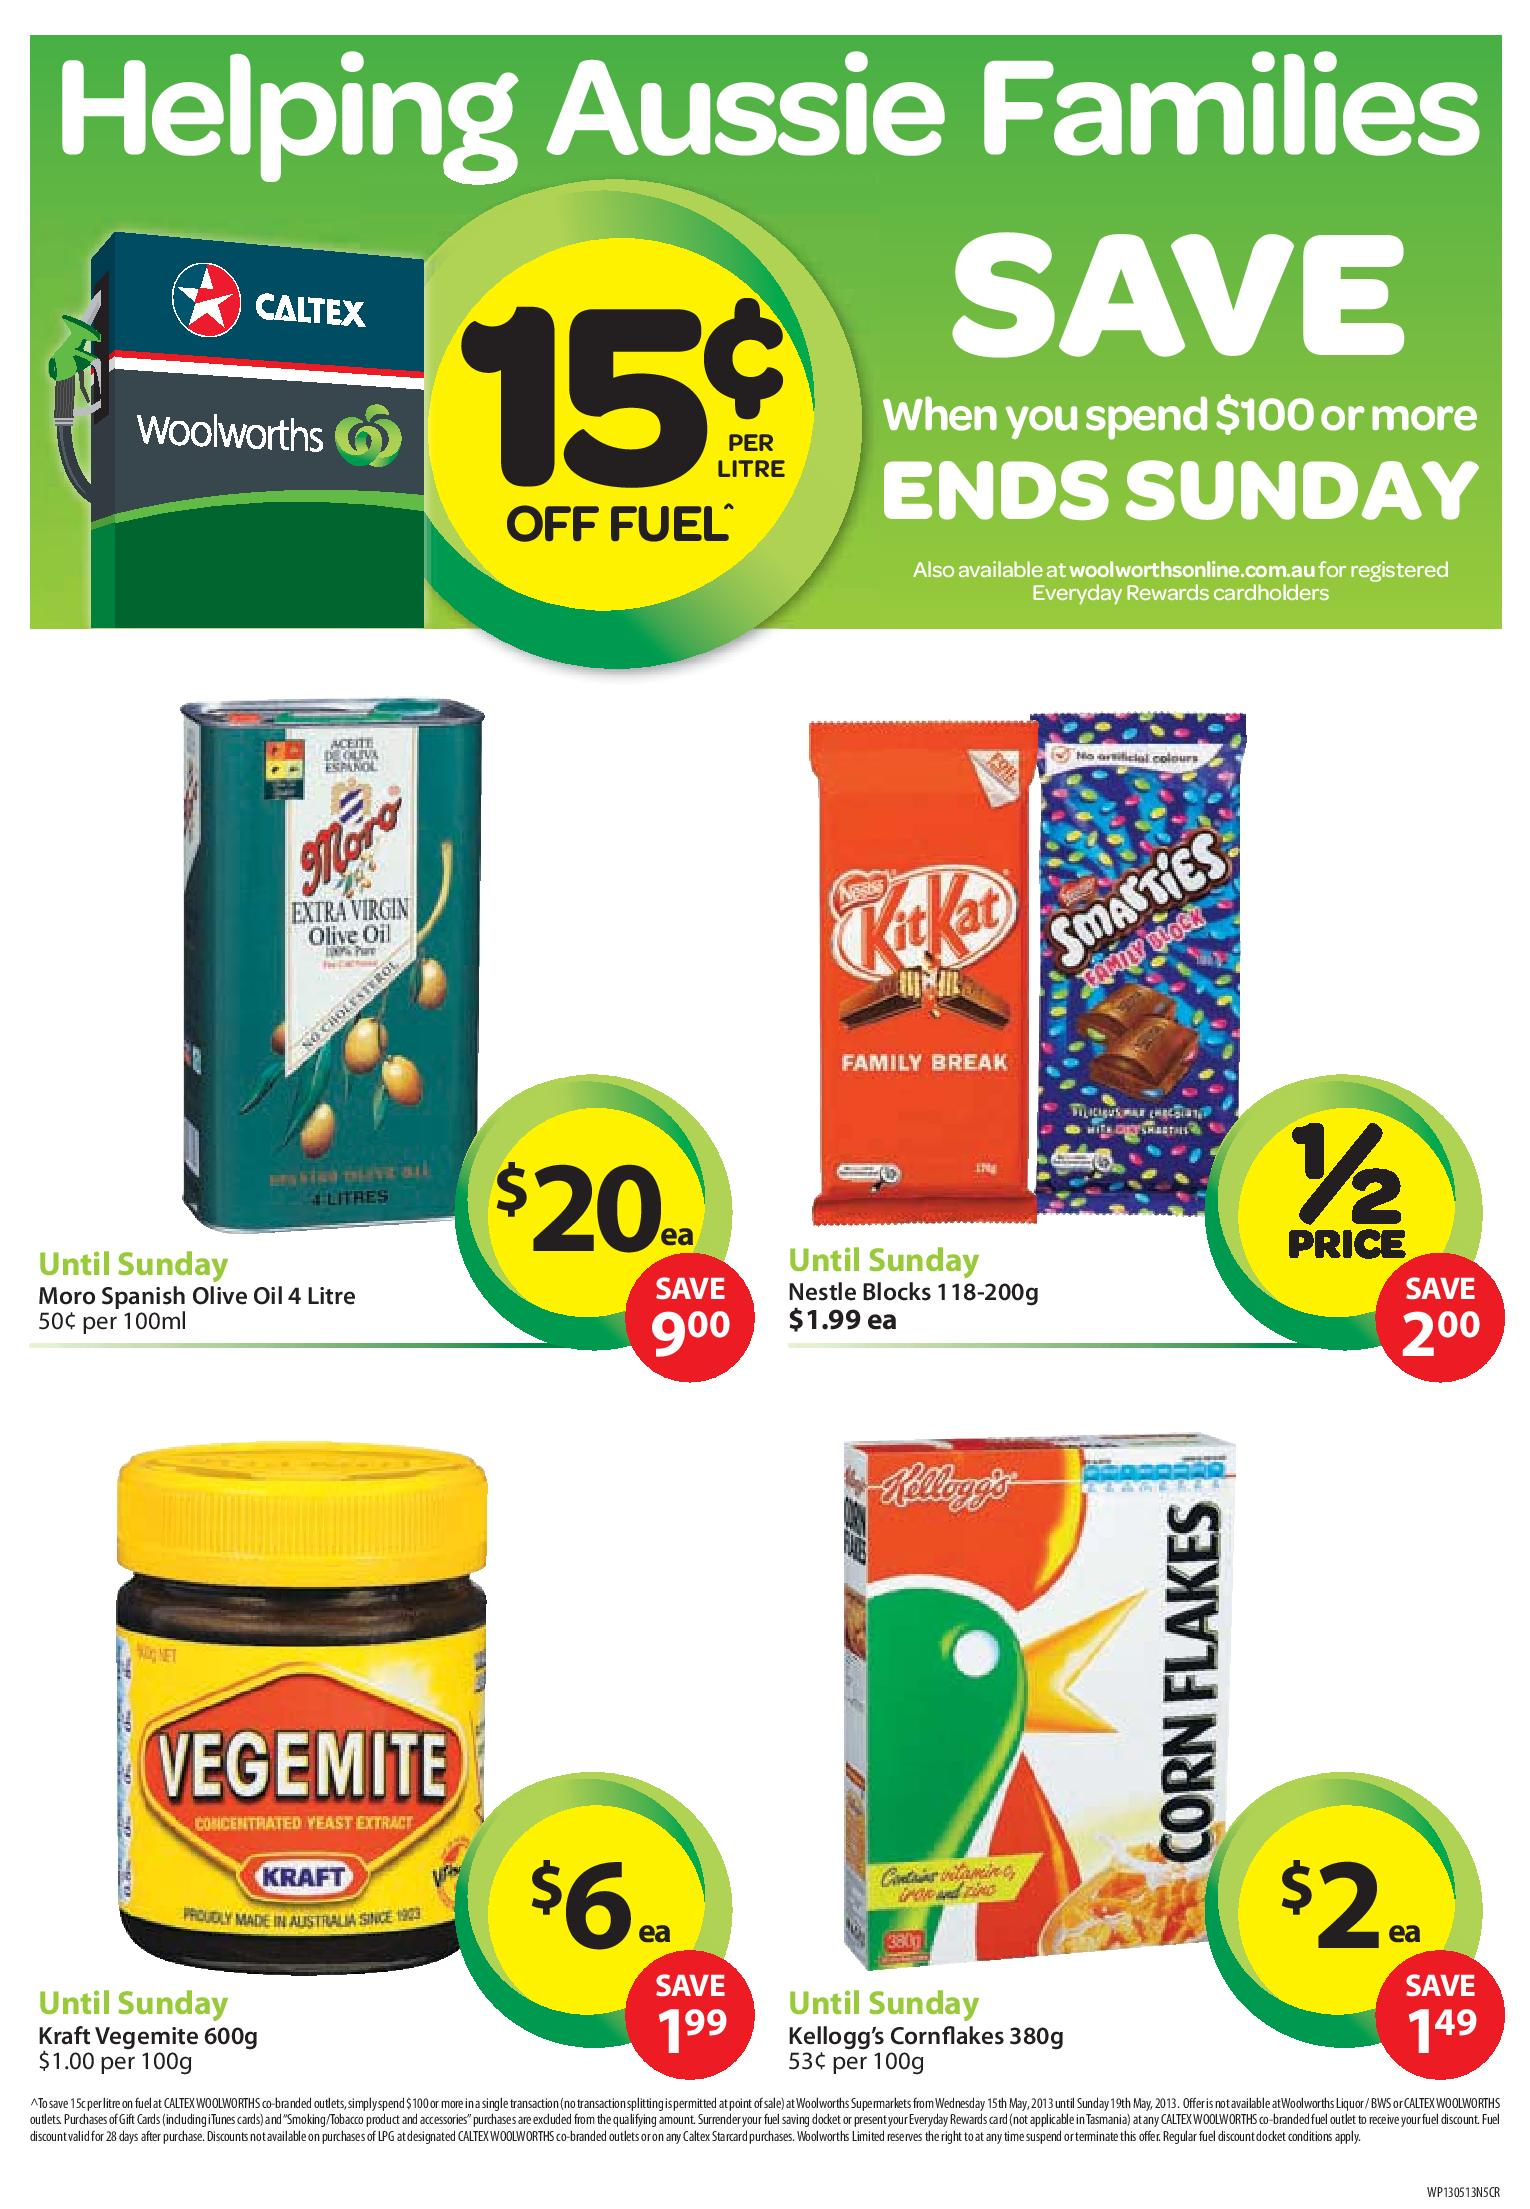 Australian Online Catalogues Woolworths Catalogue Page 2 Of 2